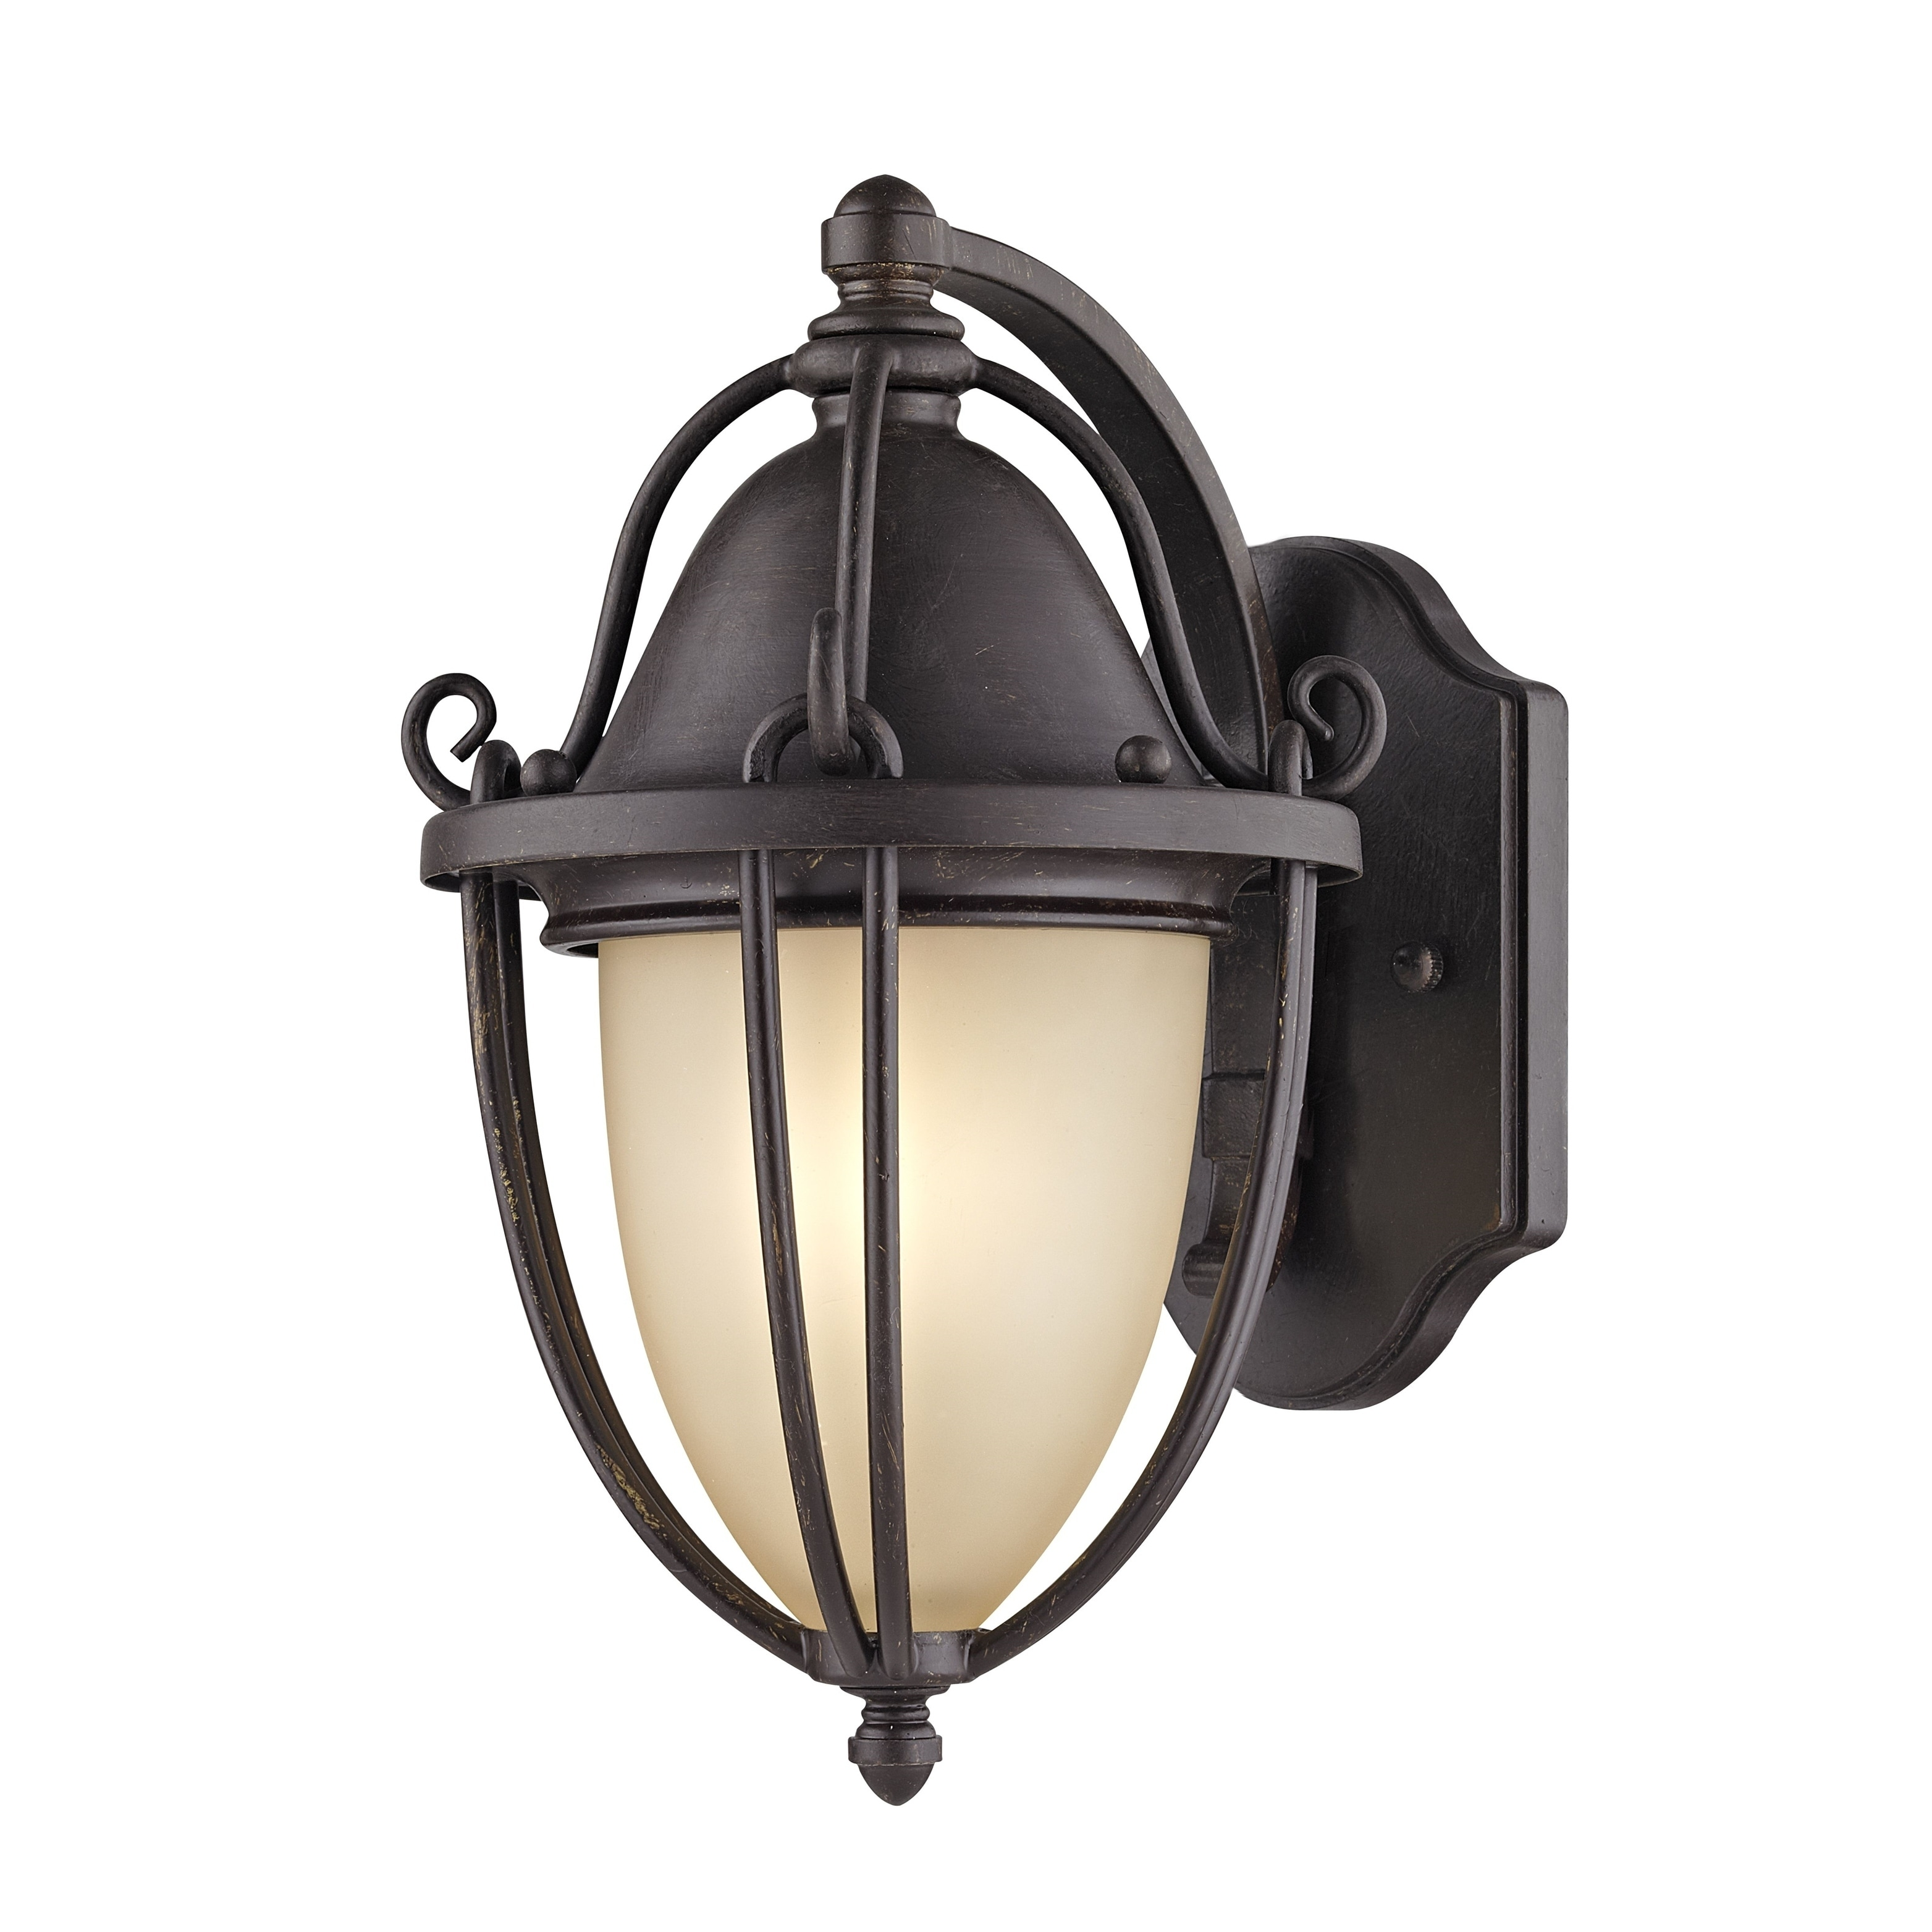 Fifth and Main Portage 1 Light Bronze Outdoor Wall Sconce...